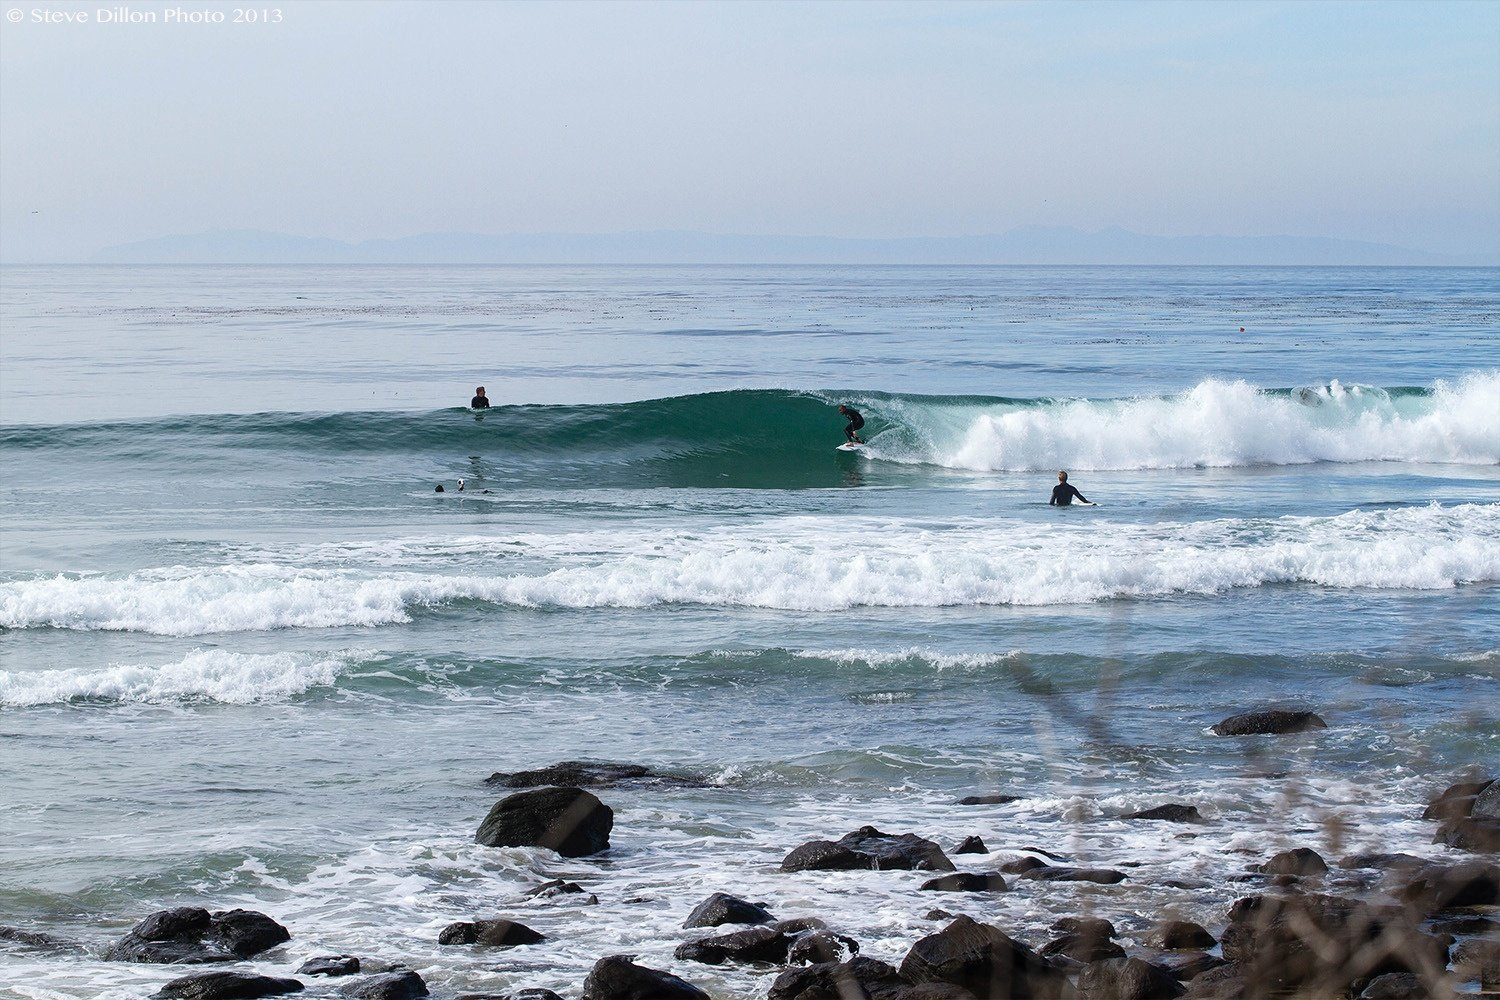 Steve Dillon Photo's photo of Salt Creek